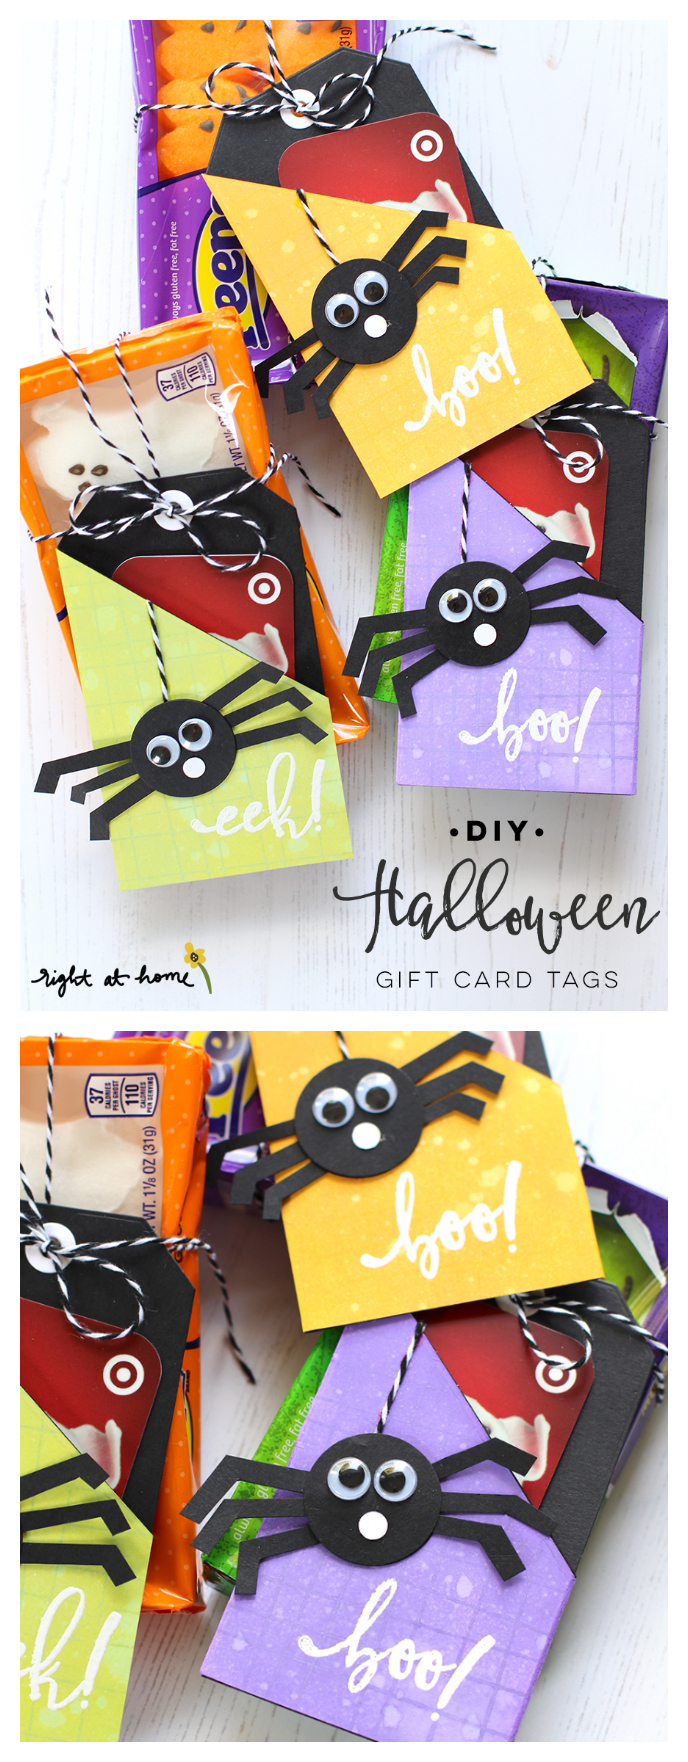 DIY Halloween Gift Card Tags | Halloween Gift Ideas